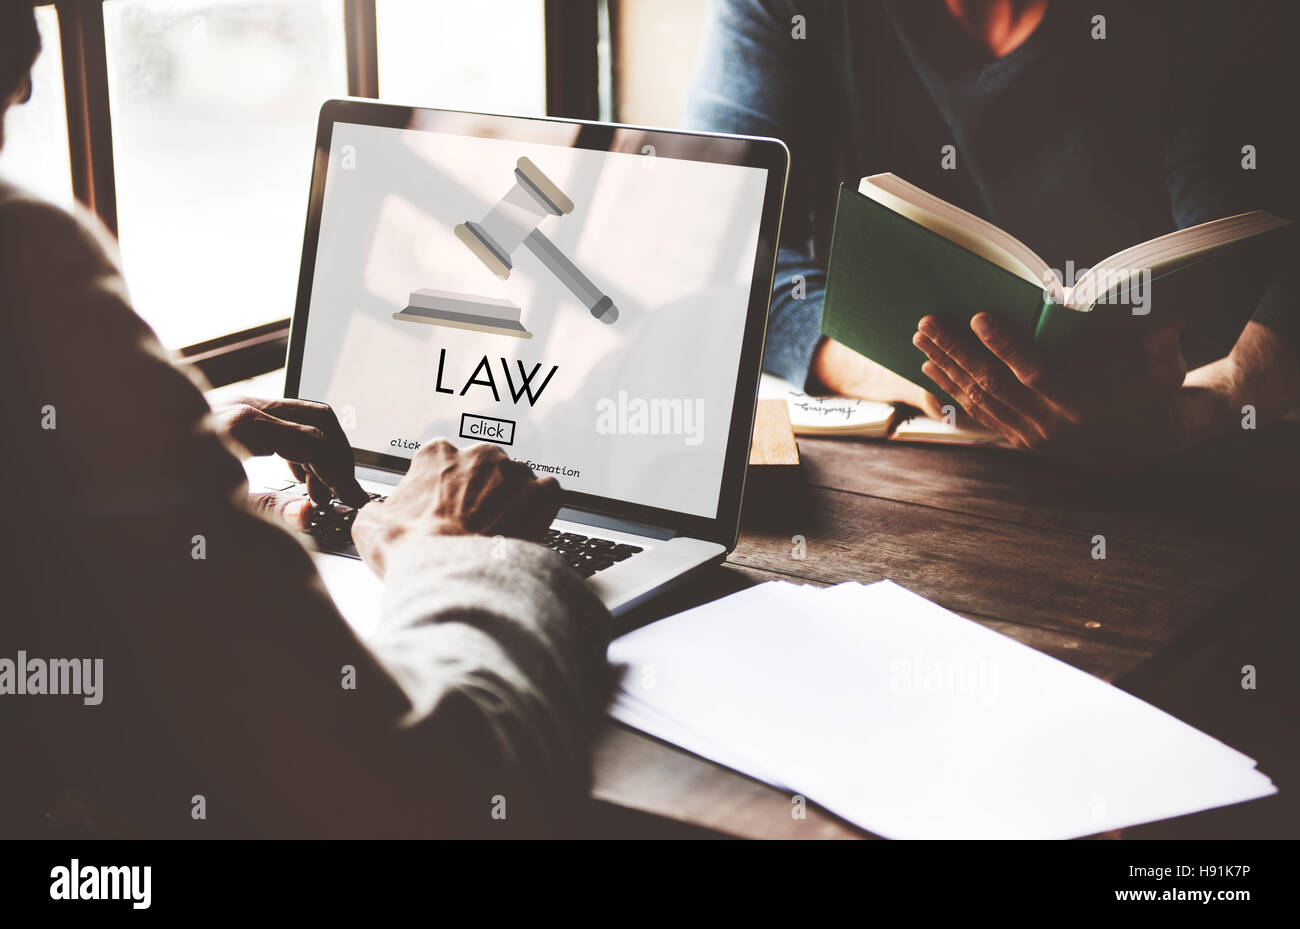 Law Lawyer Governance Legal Judge Concept - Stock Image